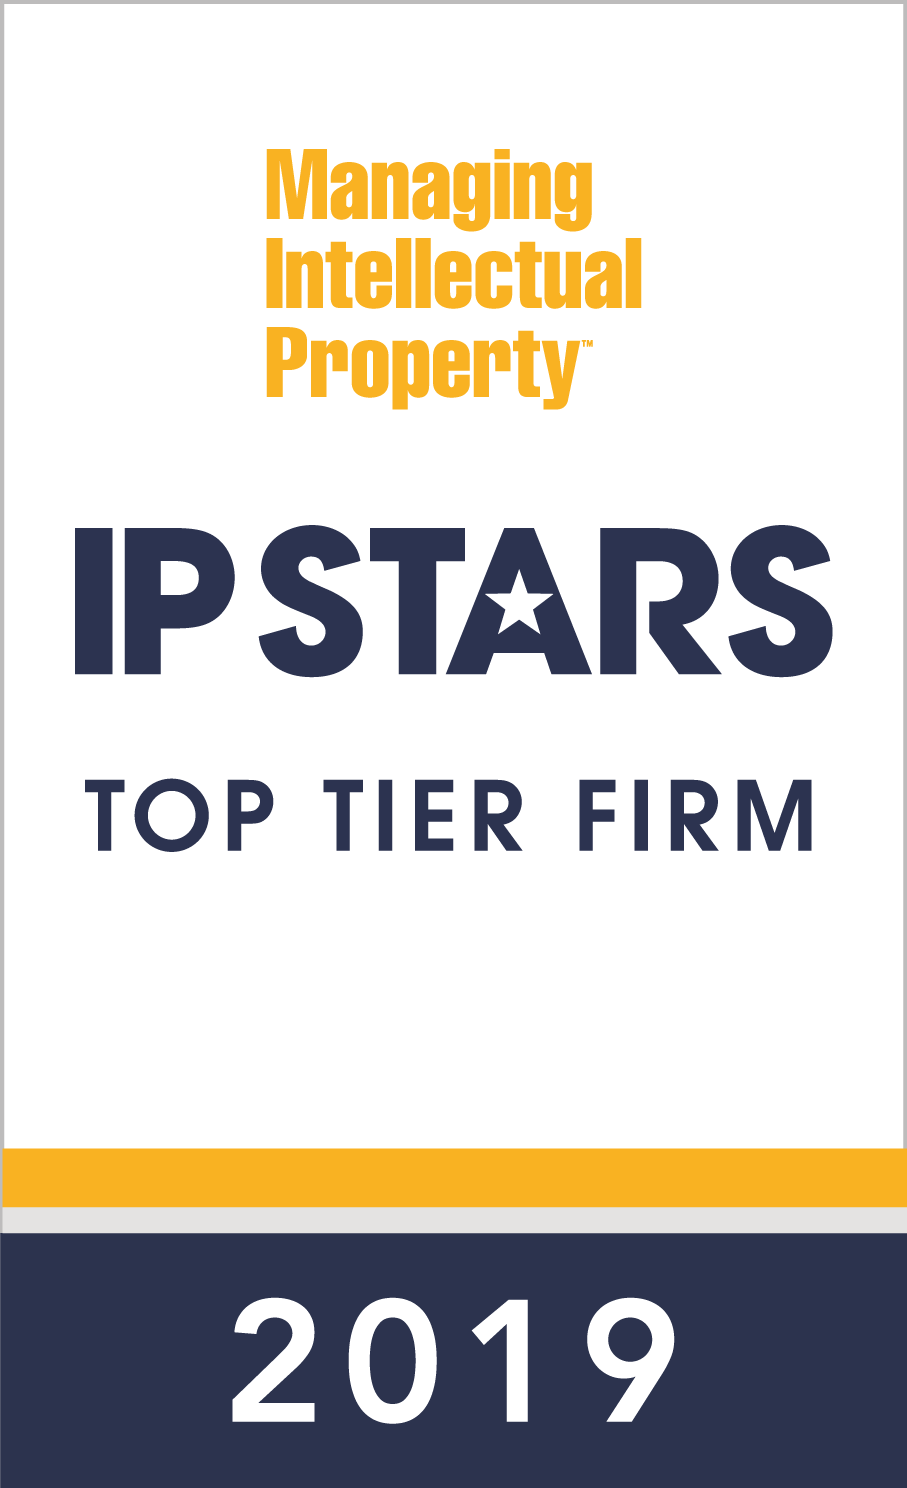 IP Stars Top Tier Firm 2019